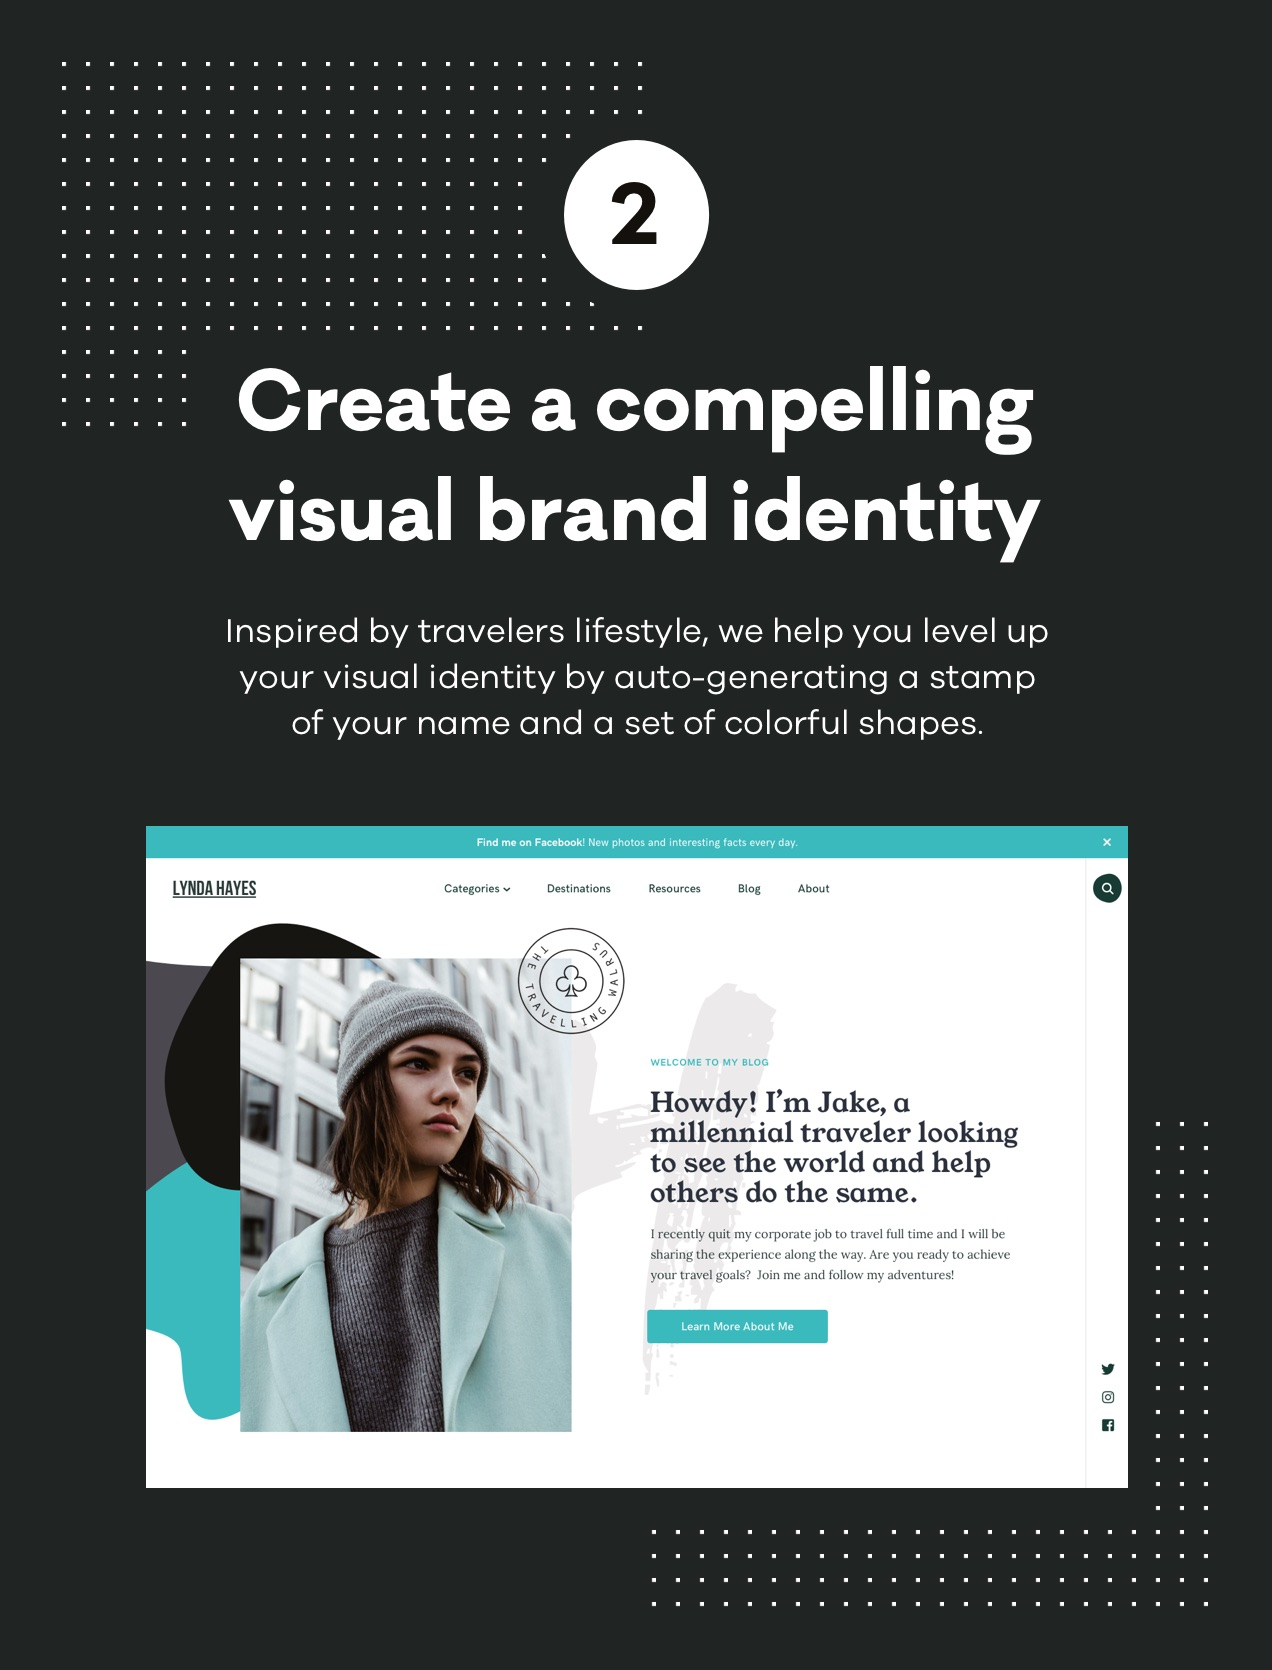 Create a compelling visual brand identity